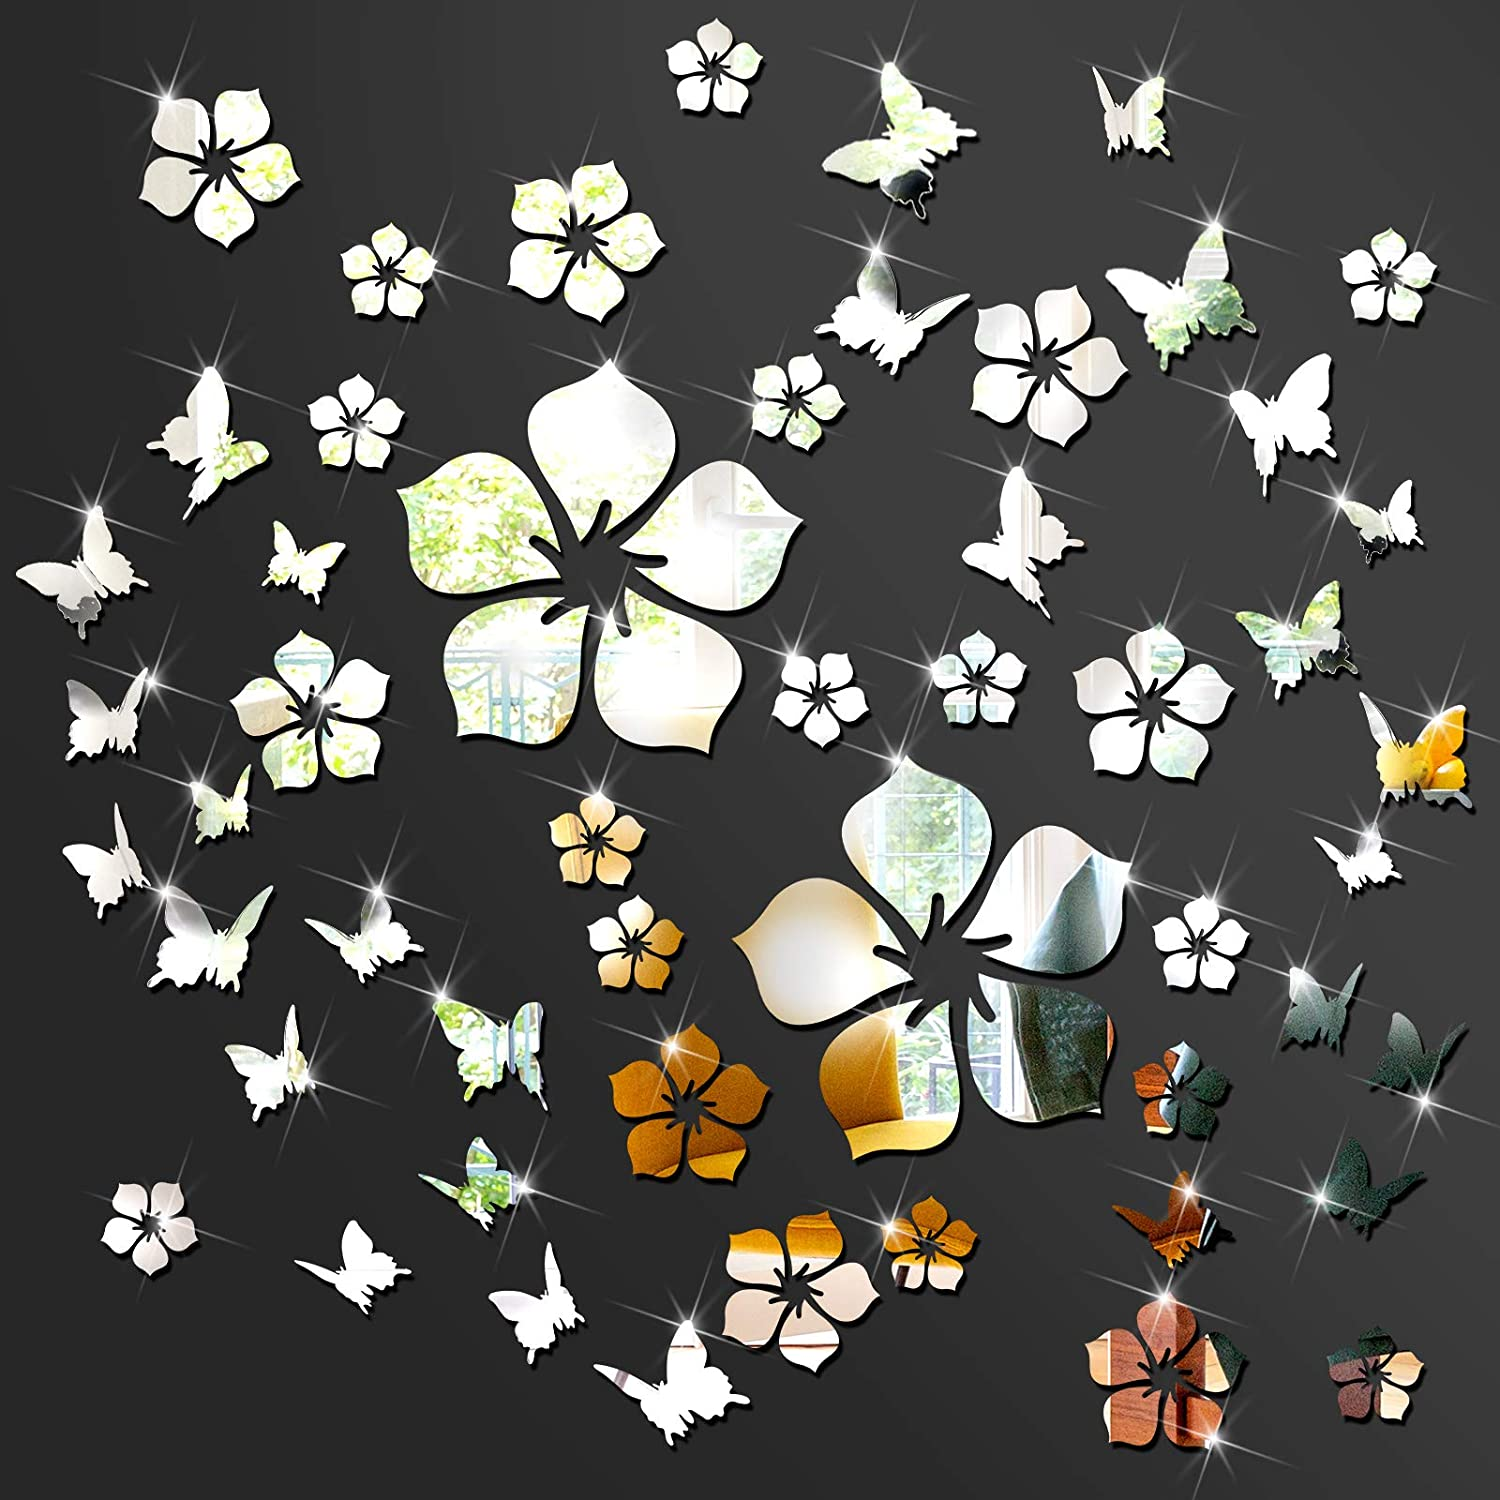 48 Pieces Acrylic Mirror Wall Sticker Decal Silver Flower DIY Wall Decoration Sticker Decal 3D Mirror Butterfly Wall Stickers for Home Living Room Bedroom Decor Home Decoration